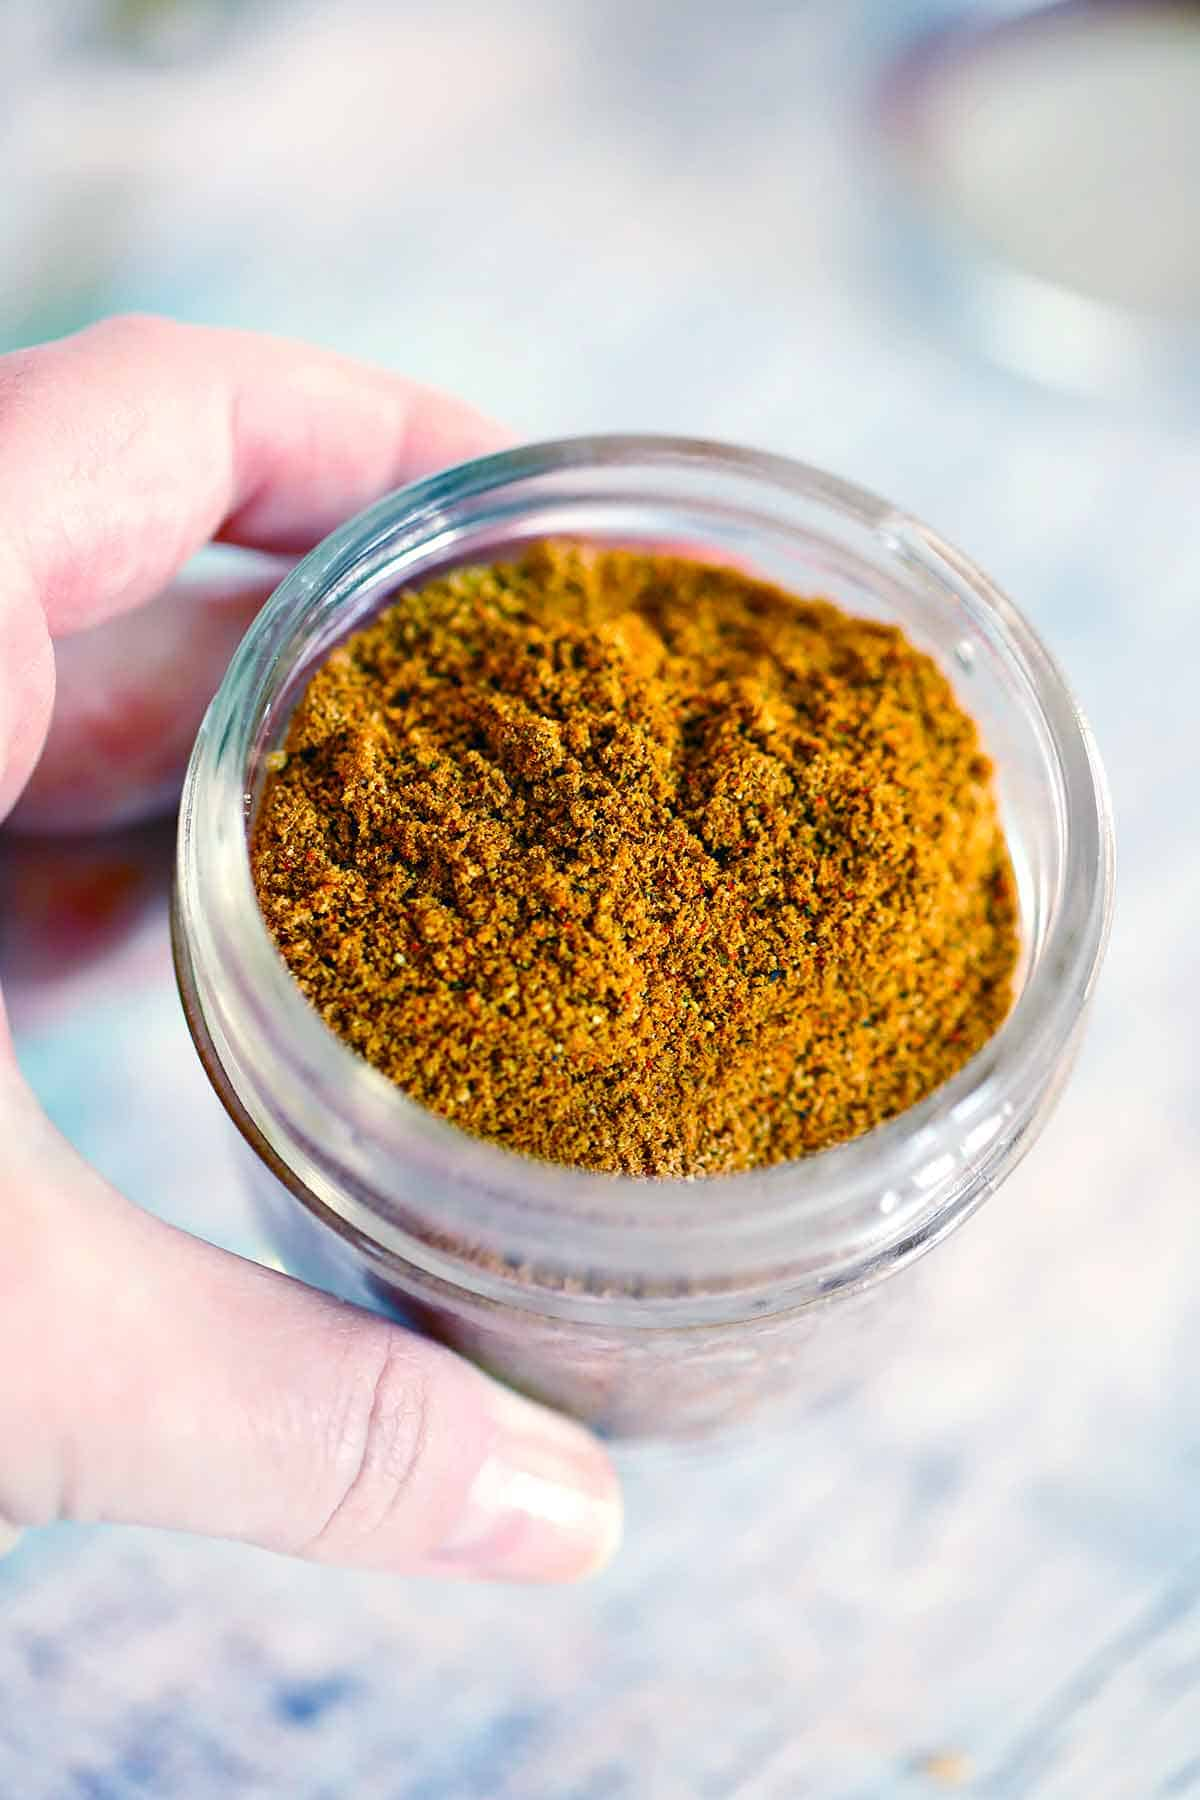 A hand holding a small jar filled with Ras el Hanout.